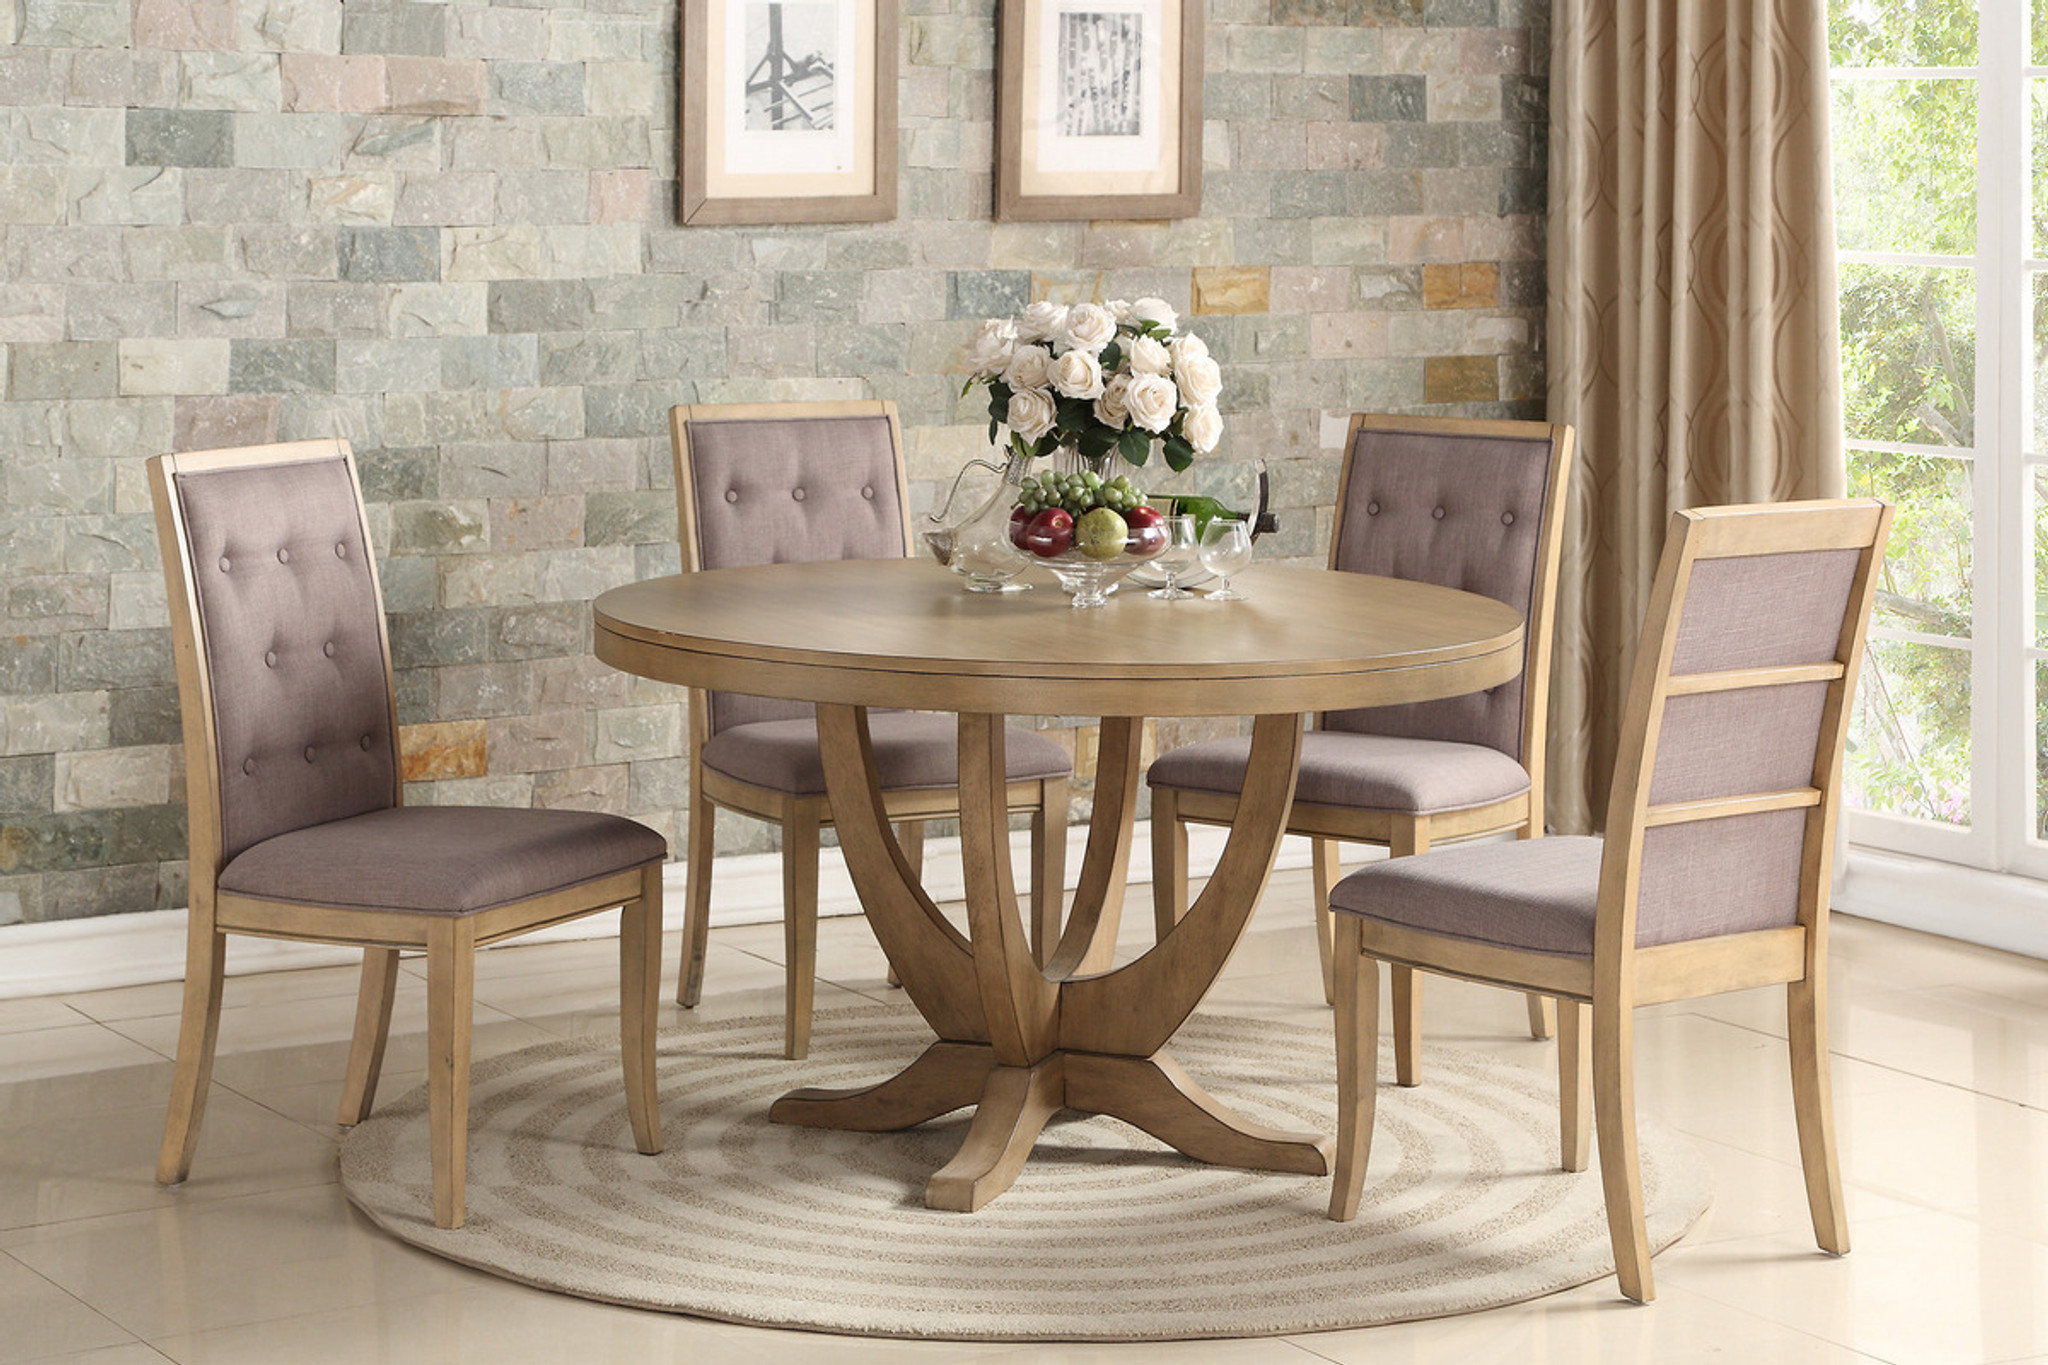 F2448 F1725 5pcs Natural Wood Round Dining Table Set By Poundex